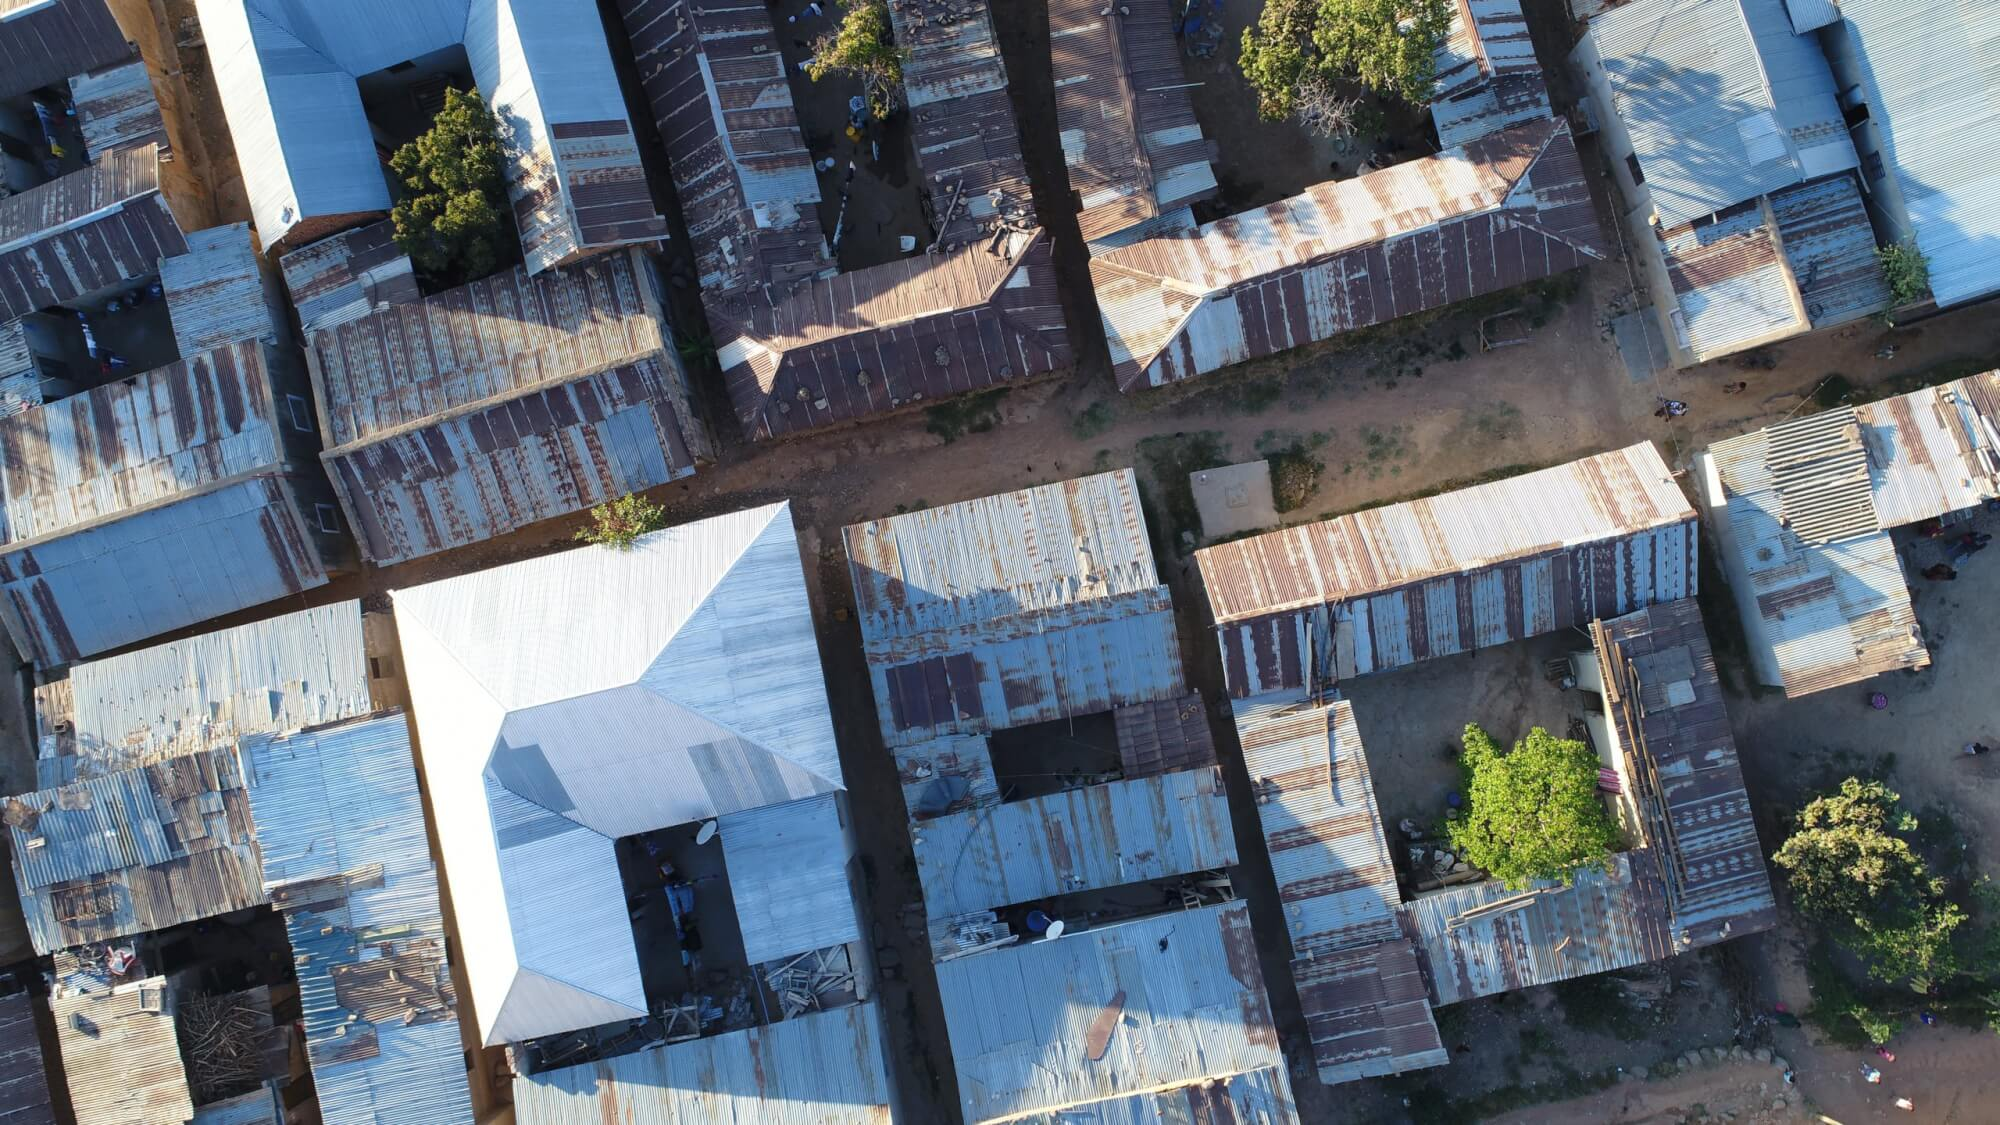 A photo of an informal settlement in Tanzania, taken by drone.